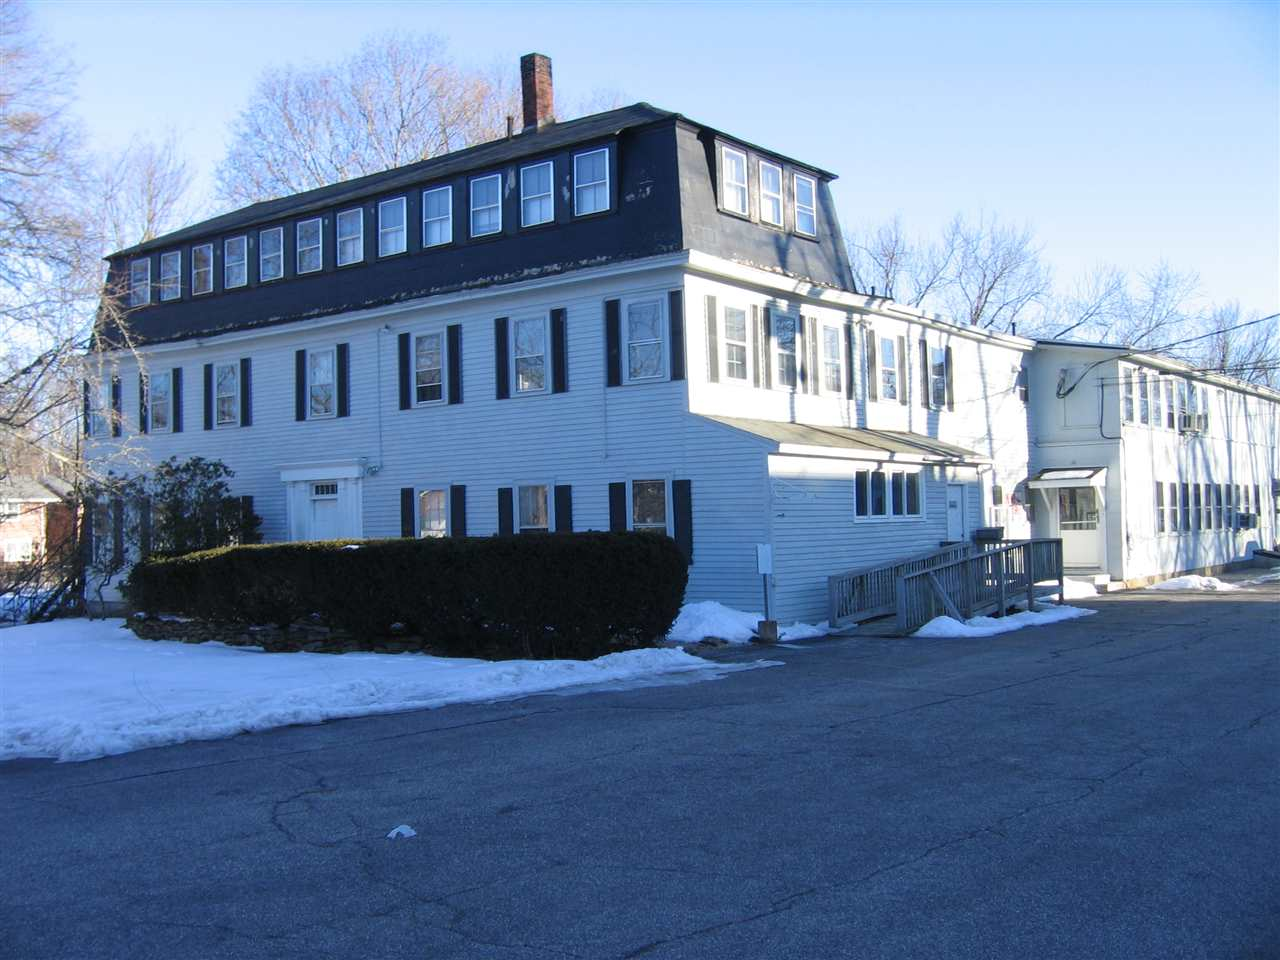 MLS 4738170: 111-113 Lock Street, Nashua NH